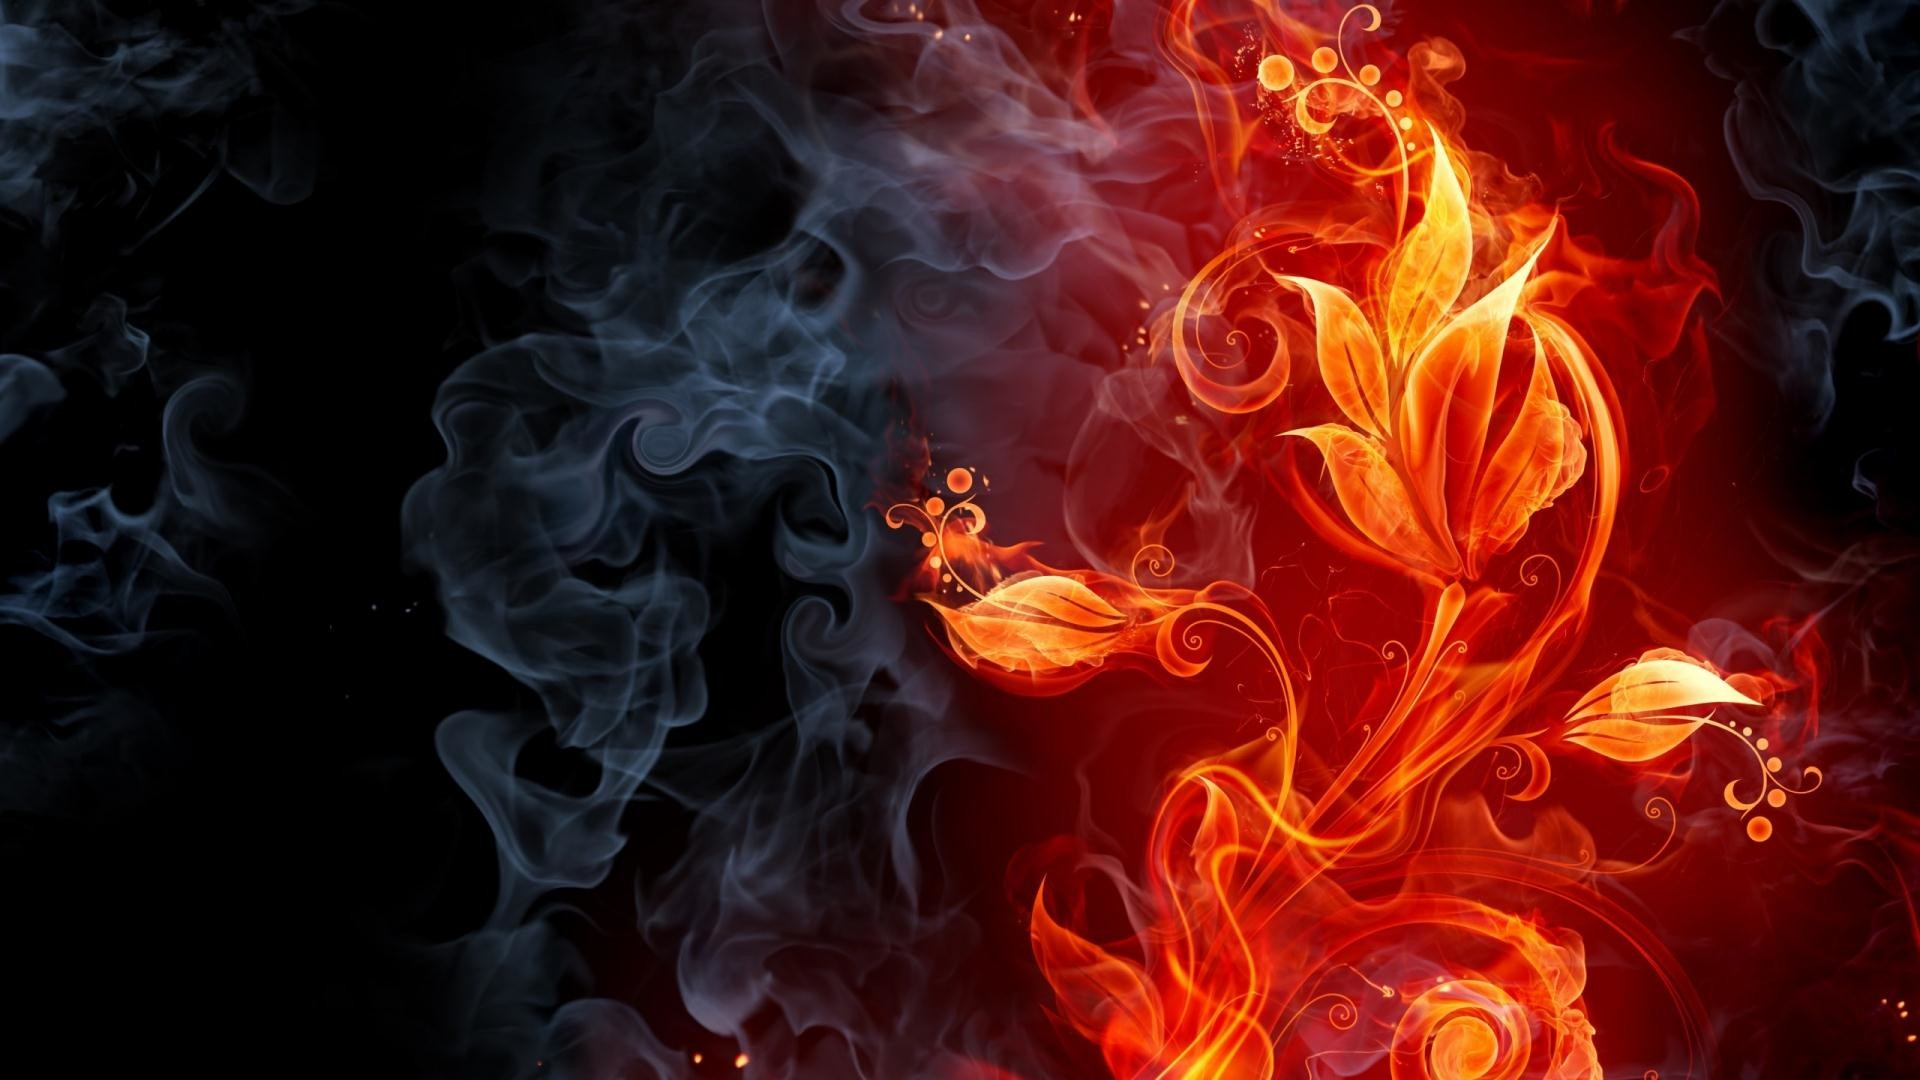 Res: 1920x1080, Fire Wallpapers HD Wallpaper Cave - HD Wallpapers